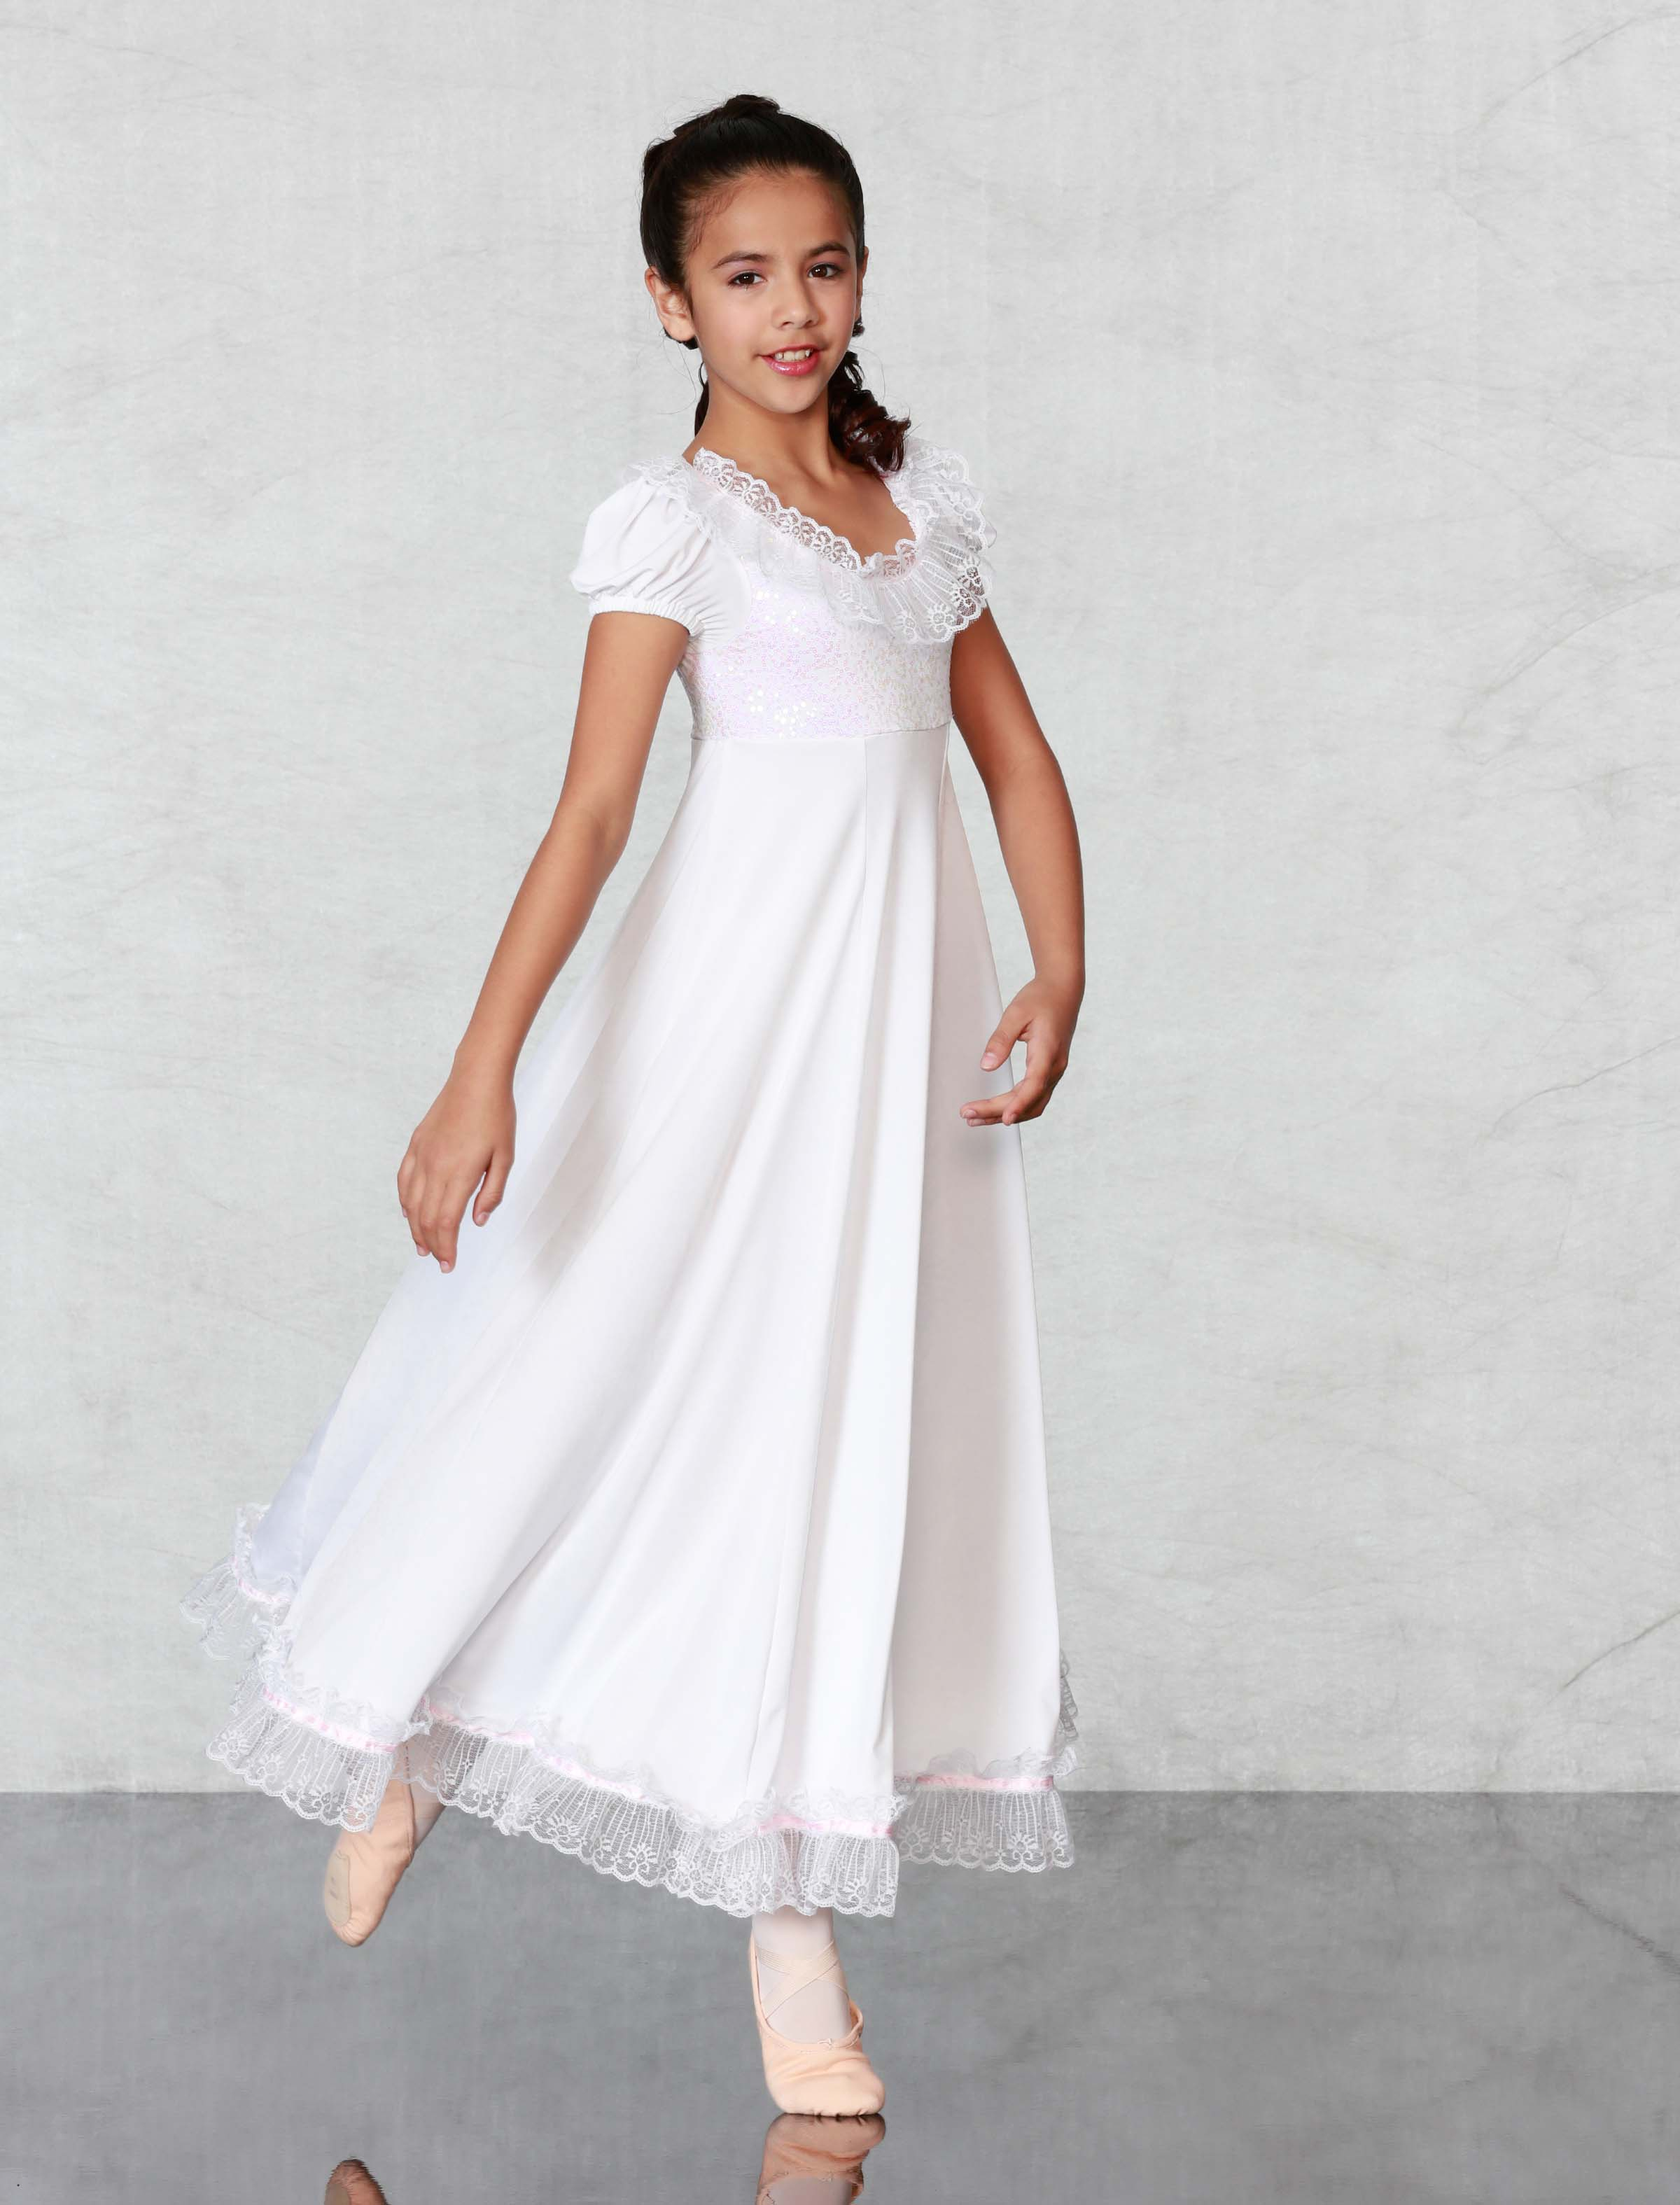 NUTCRACKER CLARA NIGHTGOWN